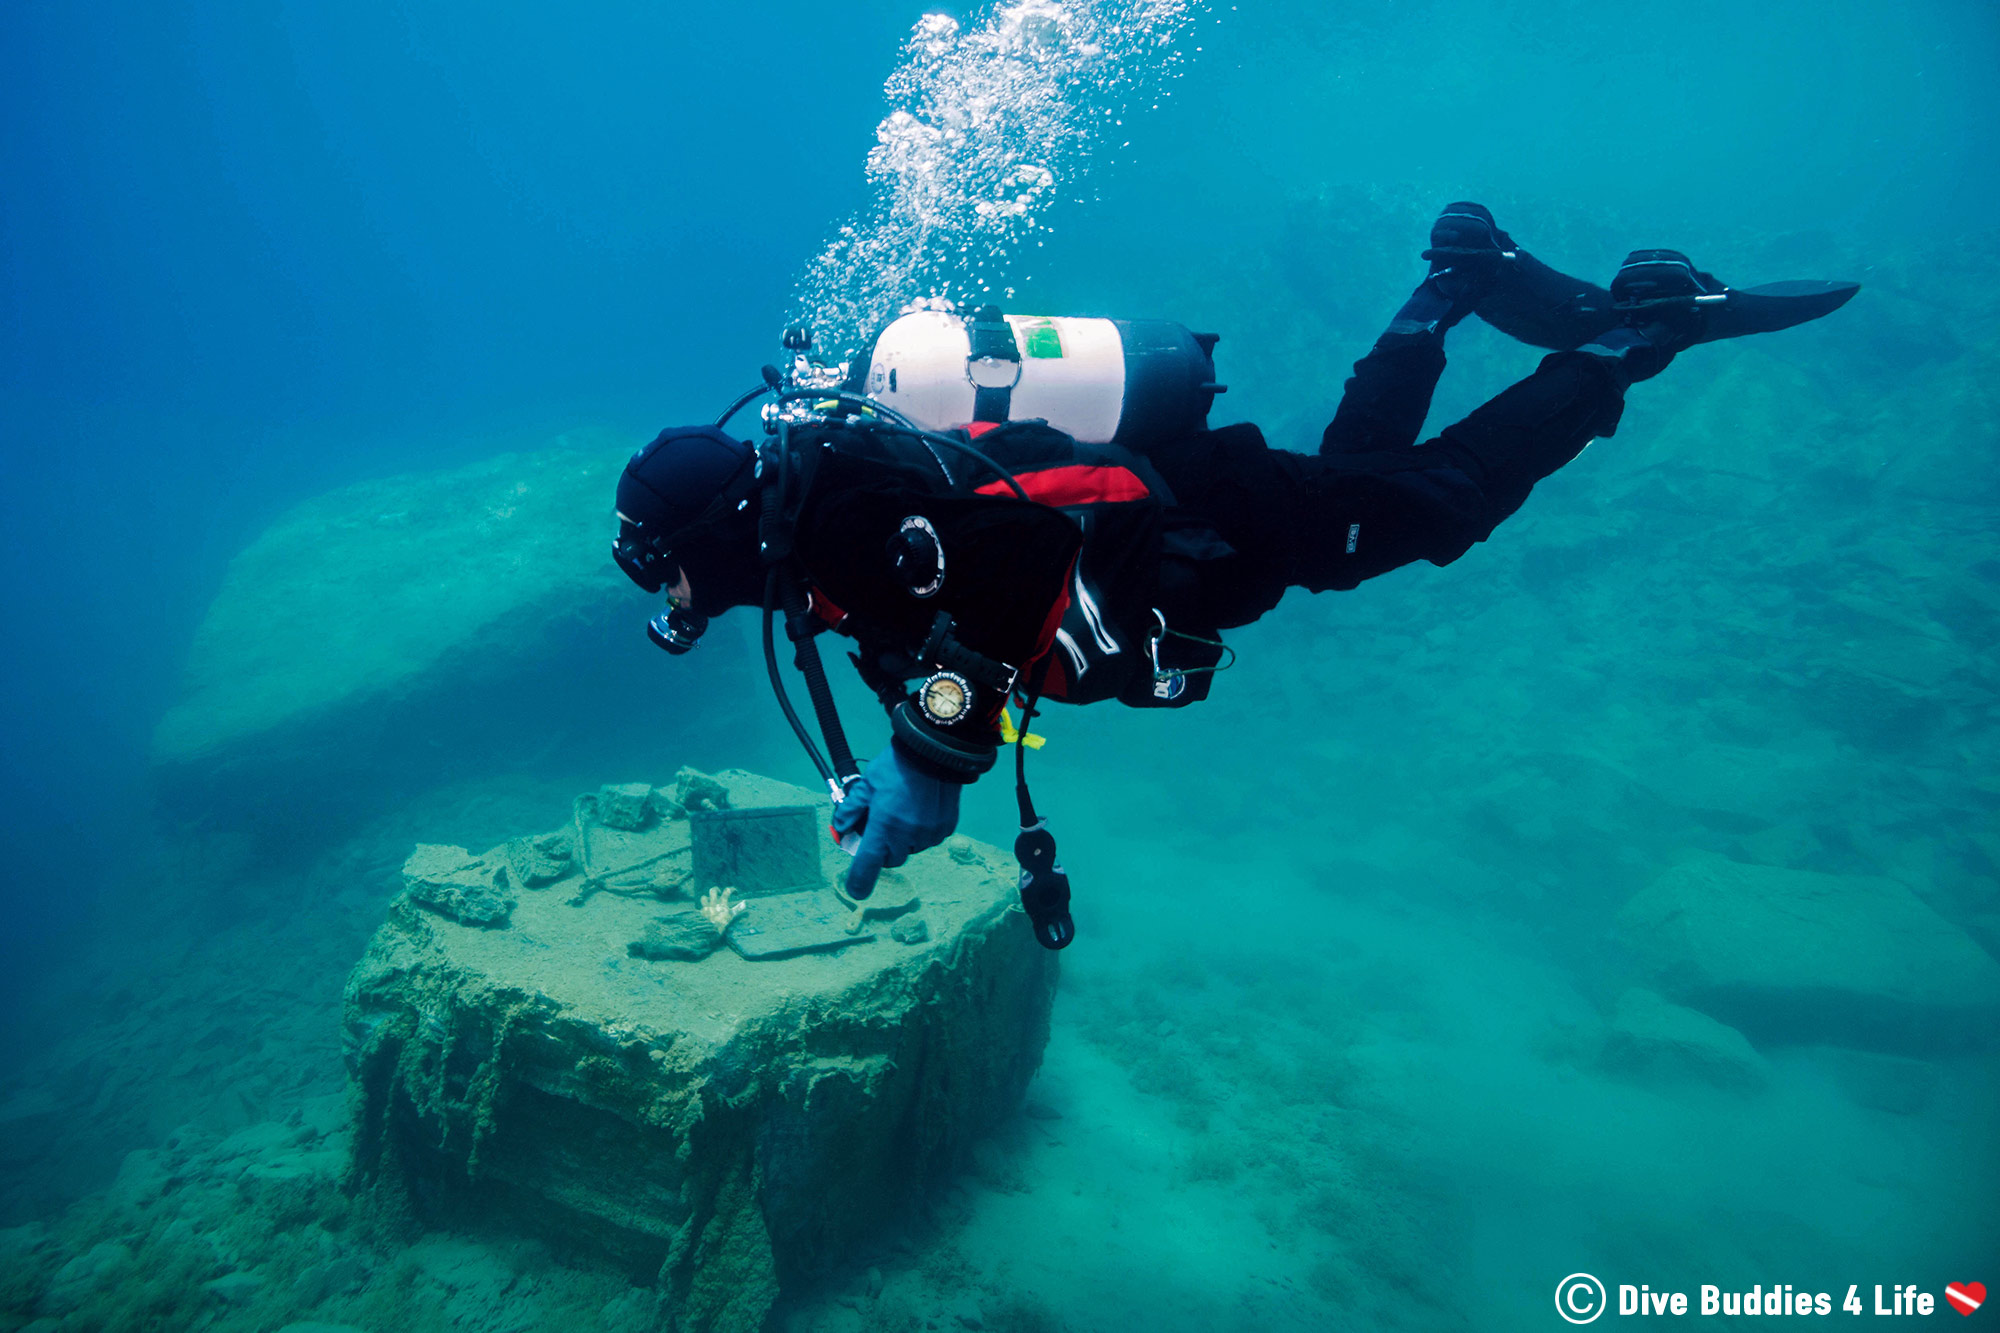 Dad The Scuba Diver Emptying His BCD For A Shallow Safety Stop, Scuba Diving Canada